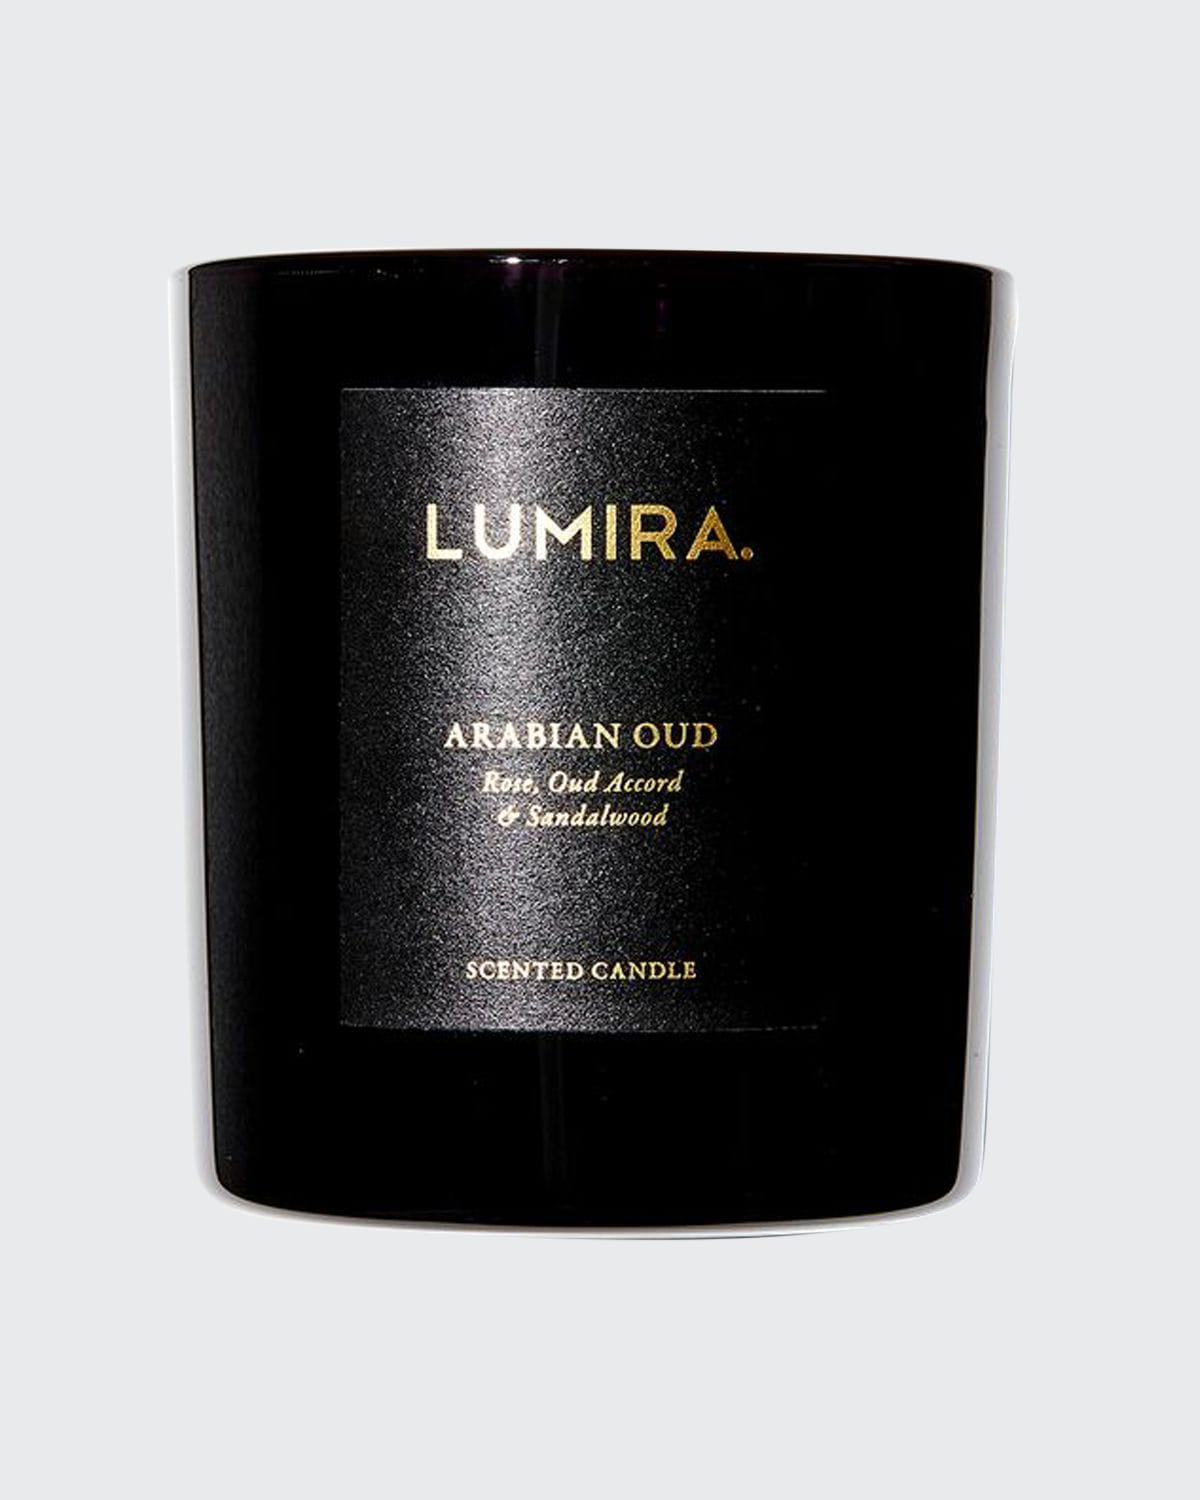 Arabian Oud Scented Candle